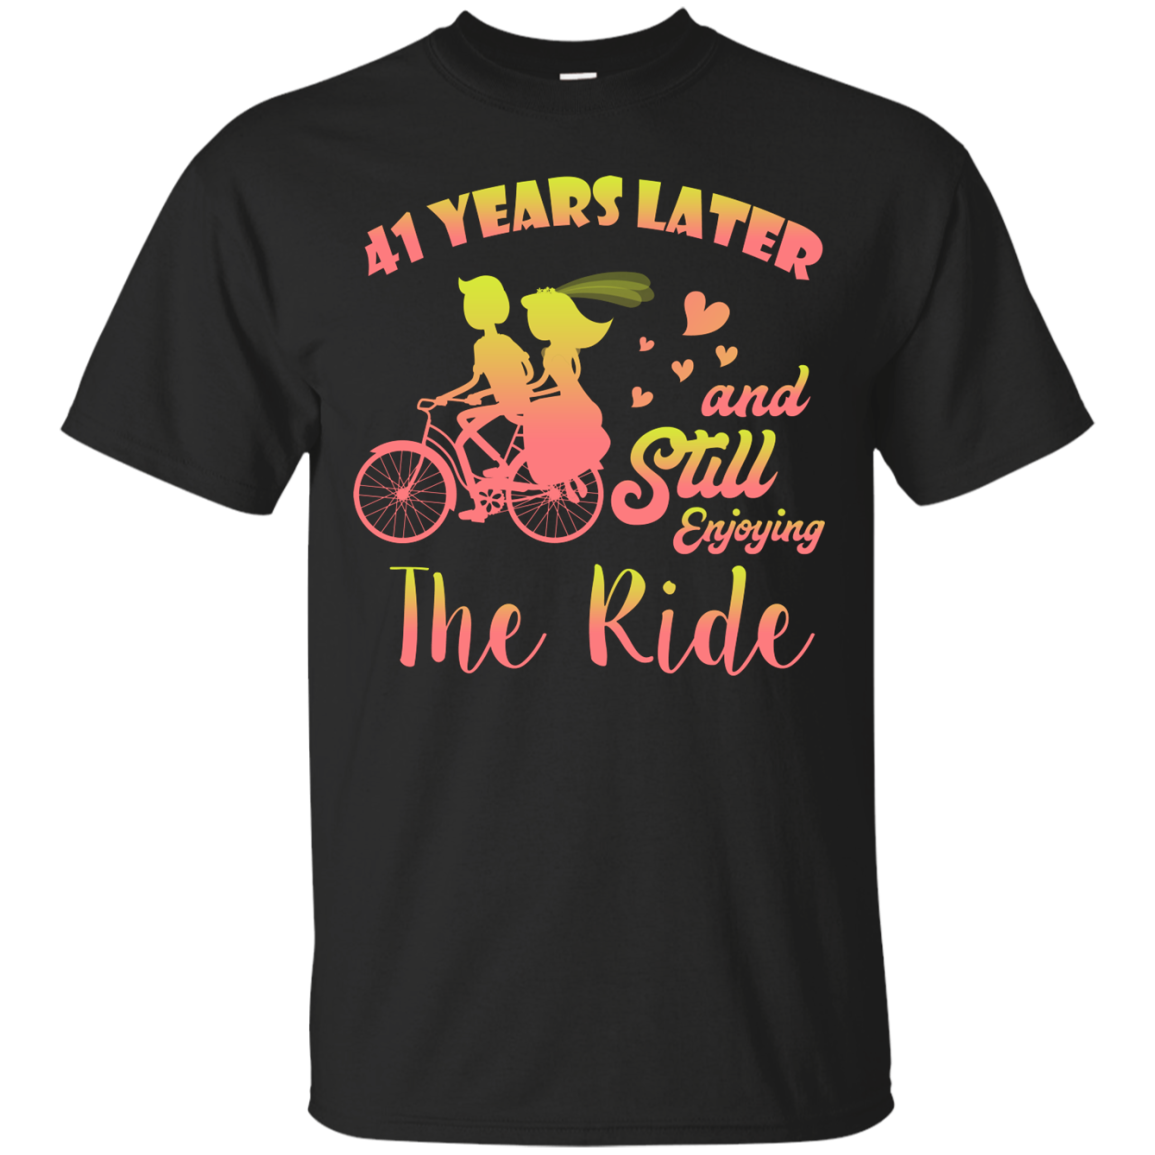 Shop From 1000 Unique 41 Years And Still Enjoying The Ride Cool Wedding Anniversary Shirt